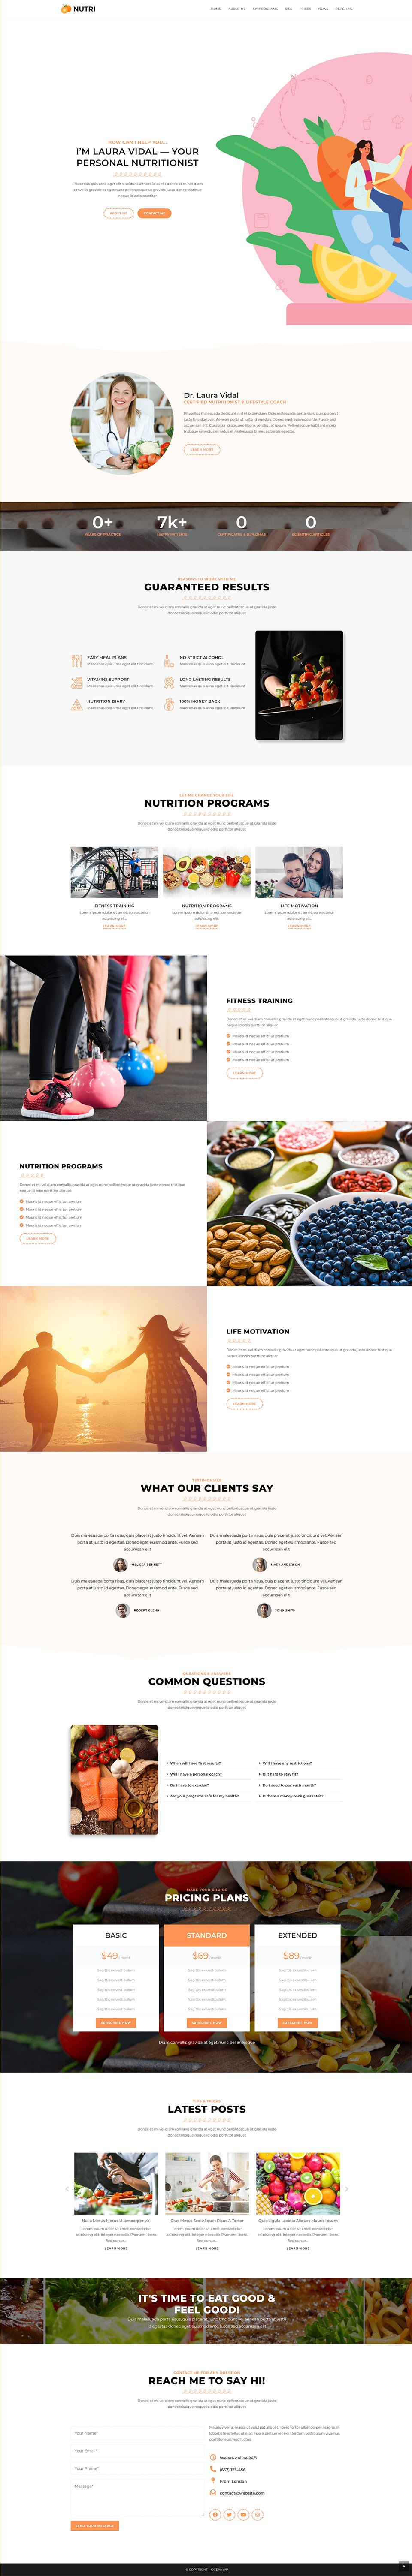 the-best-free-wordpress-themes-available-in-2021-4 The Best Free WordPress Themes Available in 2021